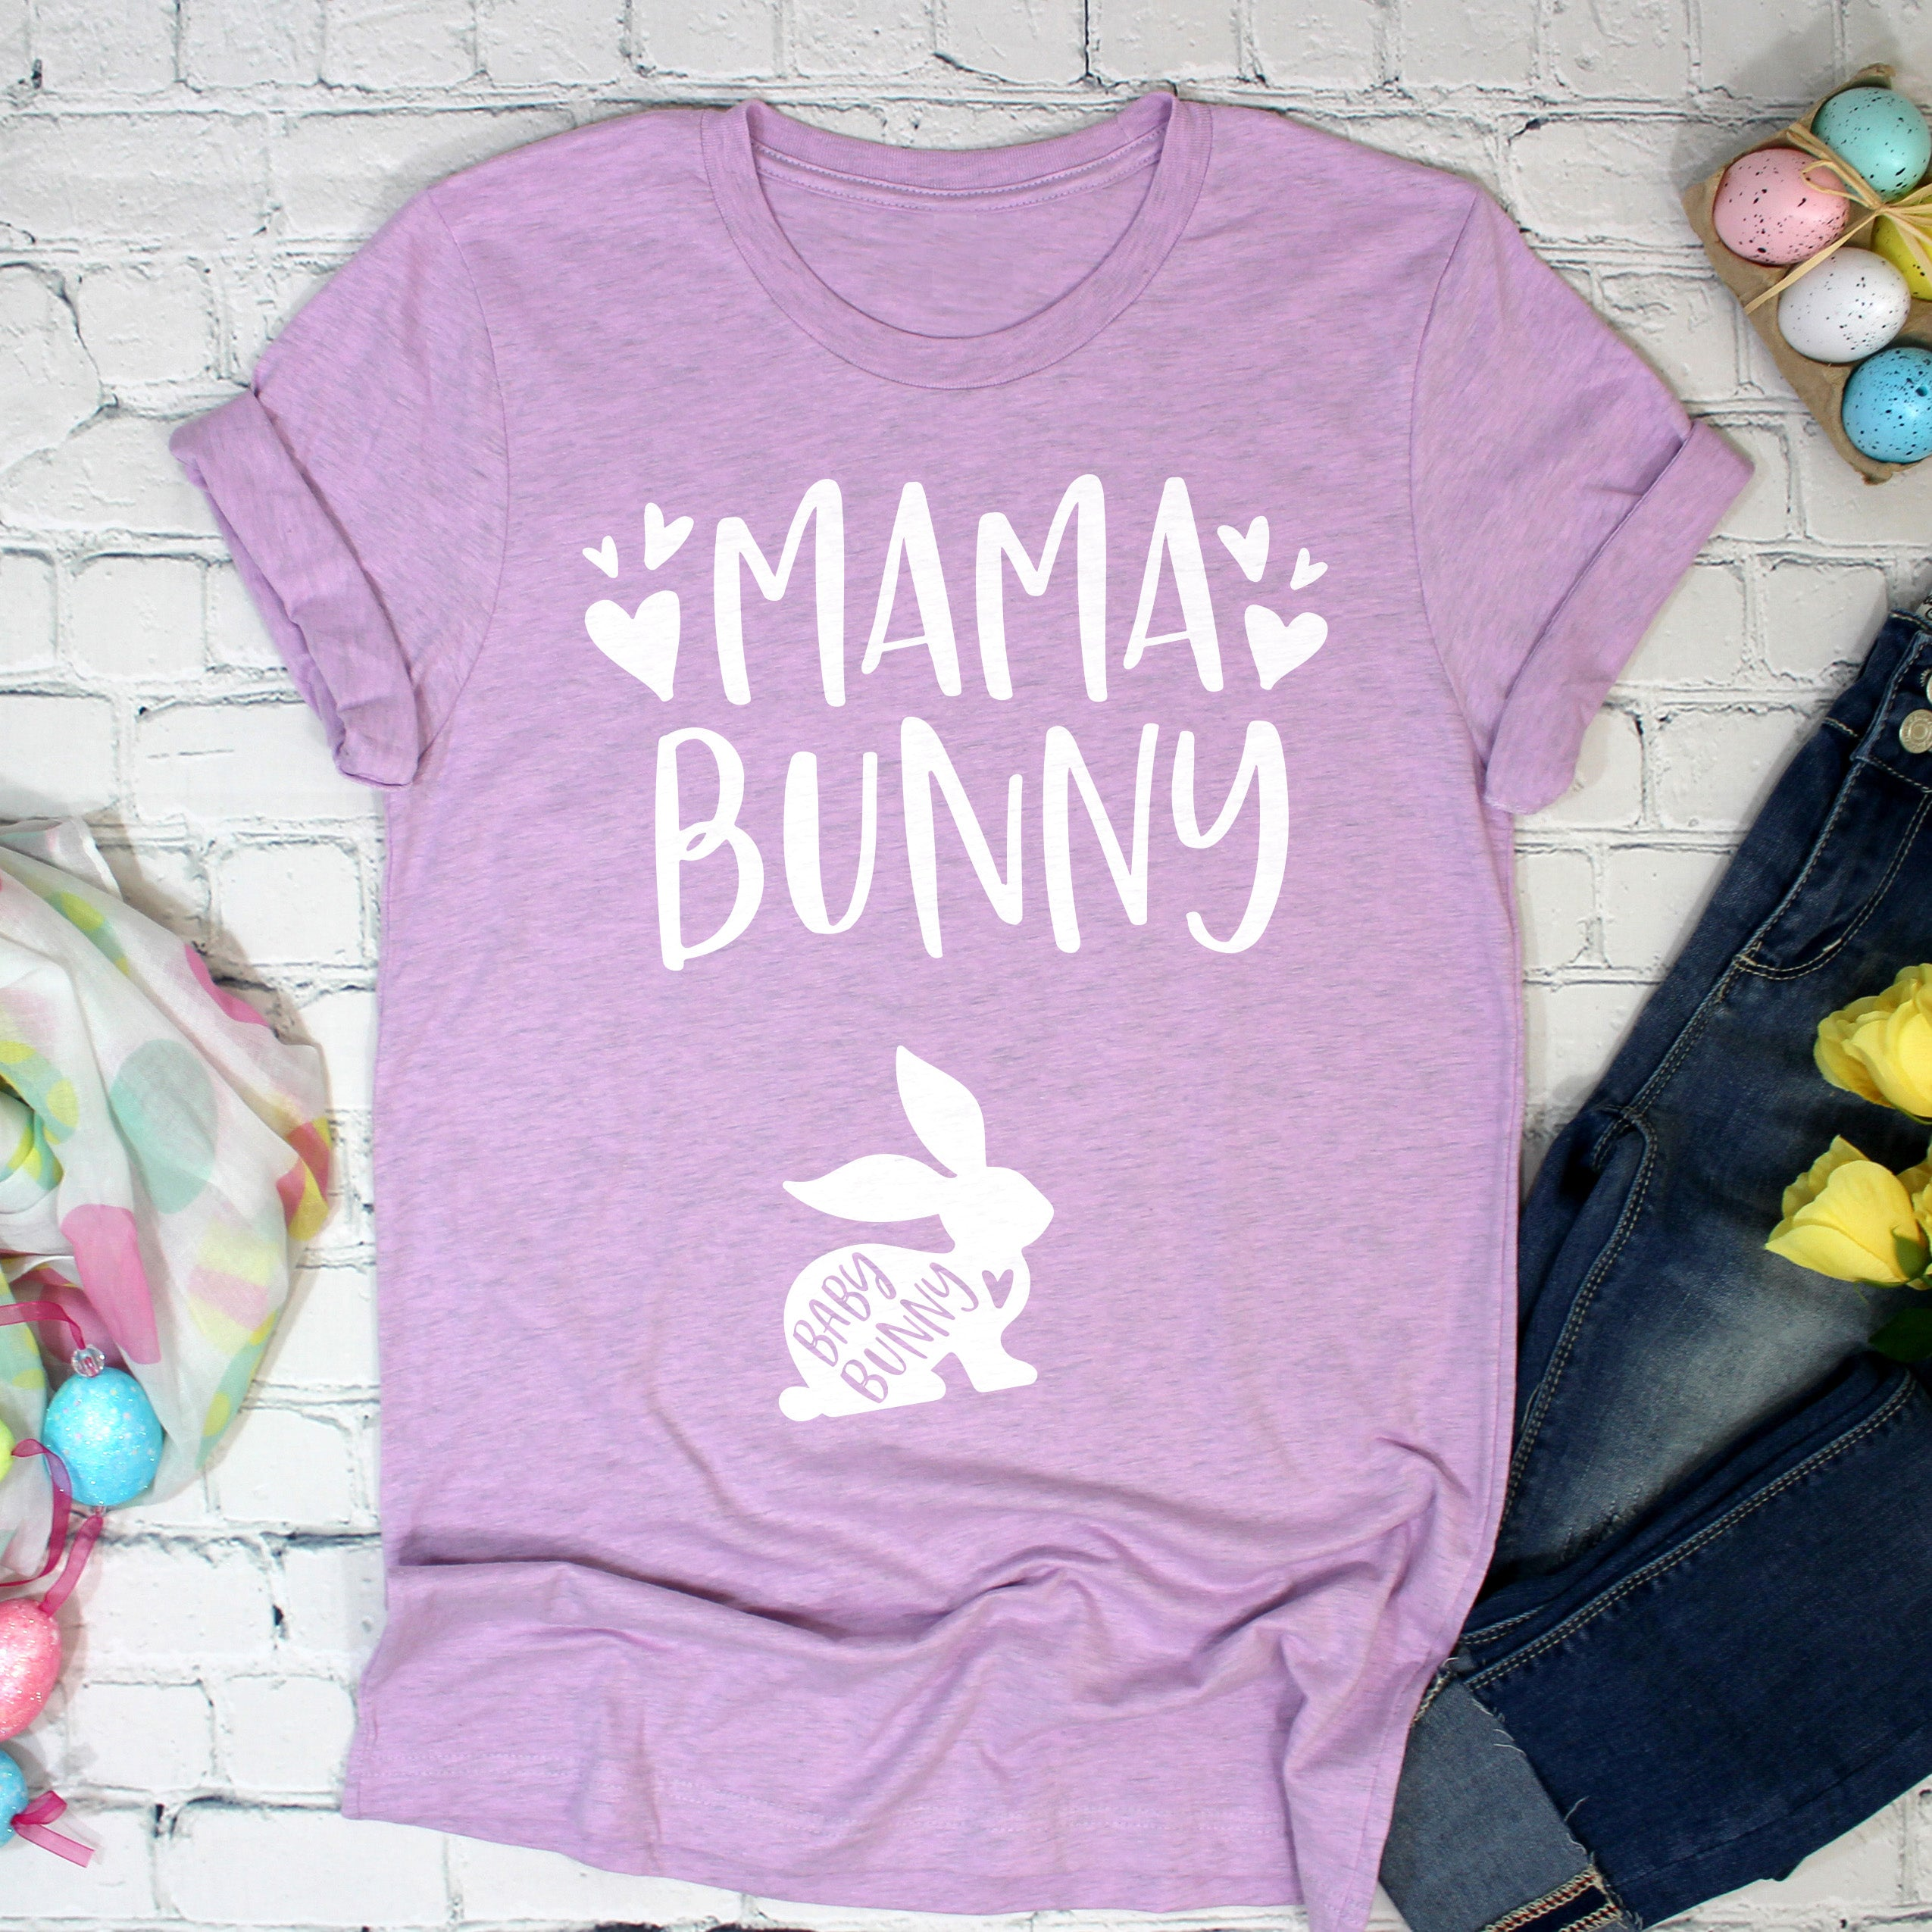 Mama Bunny Shirt - Baby Bunny Shirt - Easter Pregnancy Shirt for Women - Easter Bunny Pregnant Shirt - Easter Spring Pregnancy Announcement